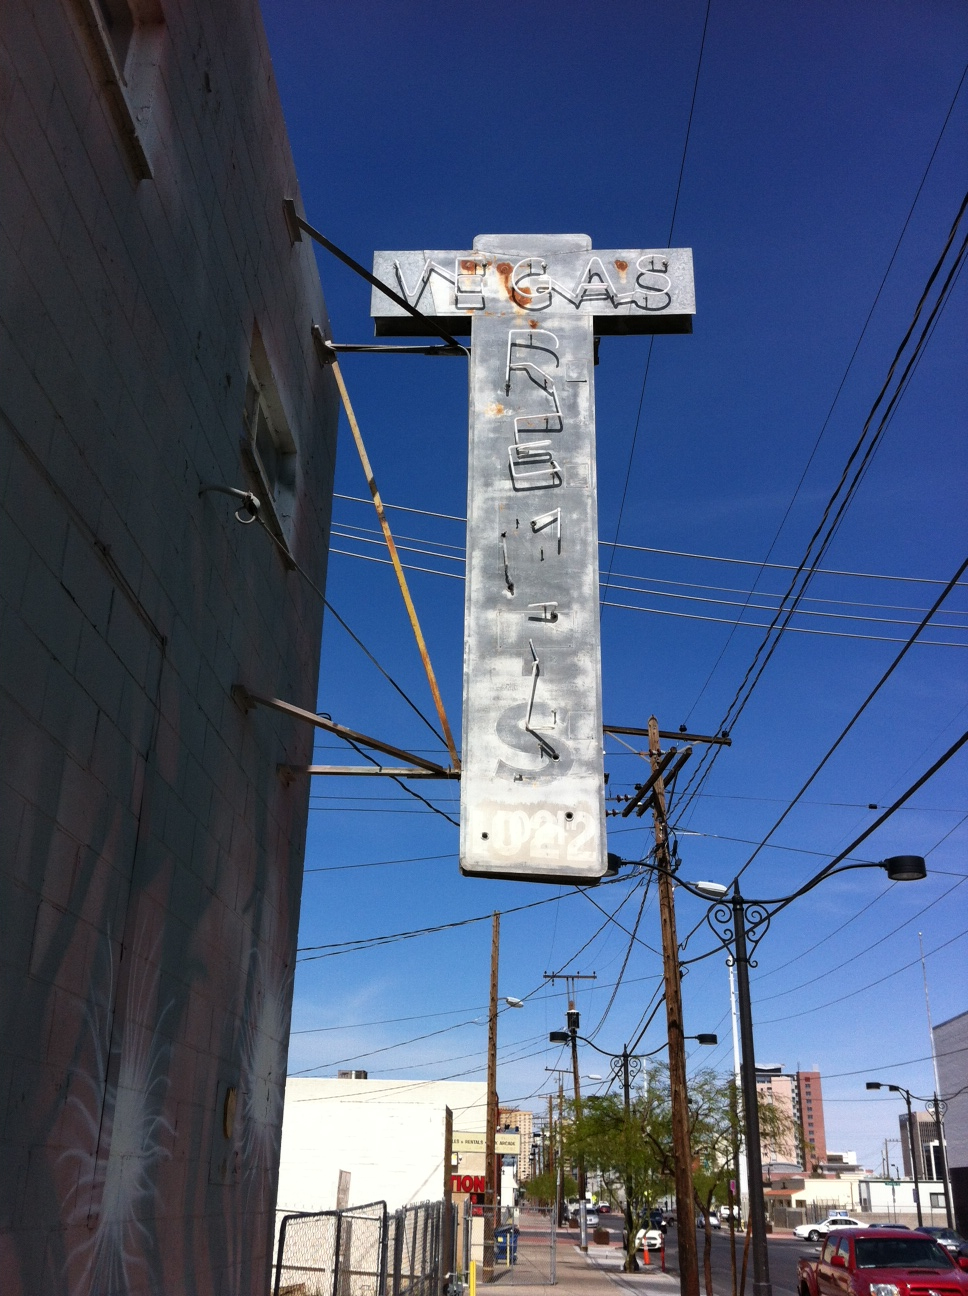 Found this old cross neon light in the Arts District, to me this was more interesting than all of the huge glitzy neon lights on The Strip or Freemont Street.